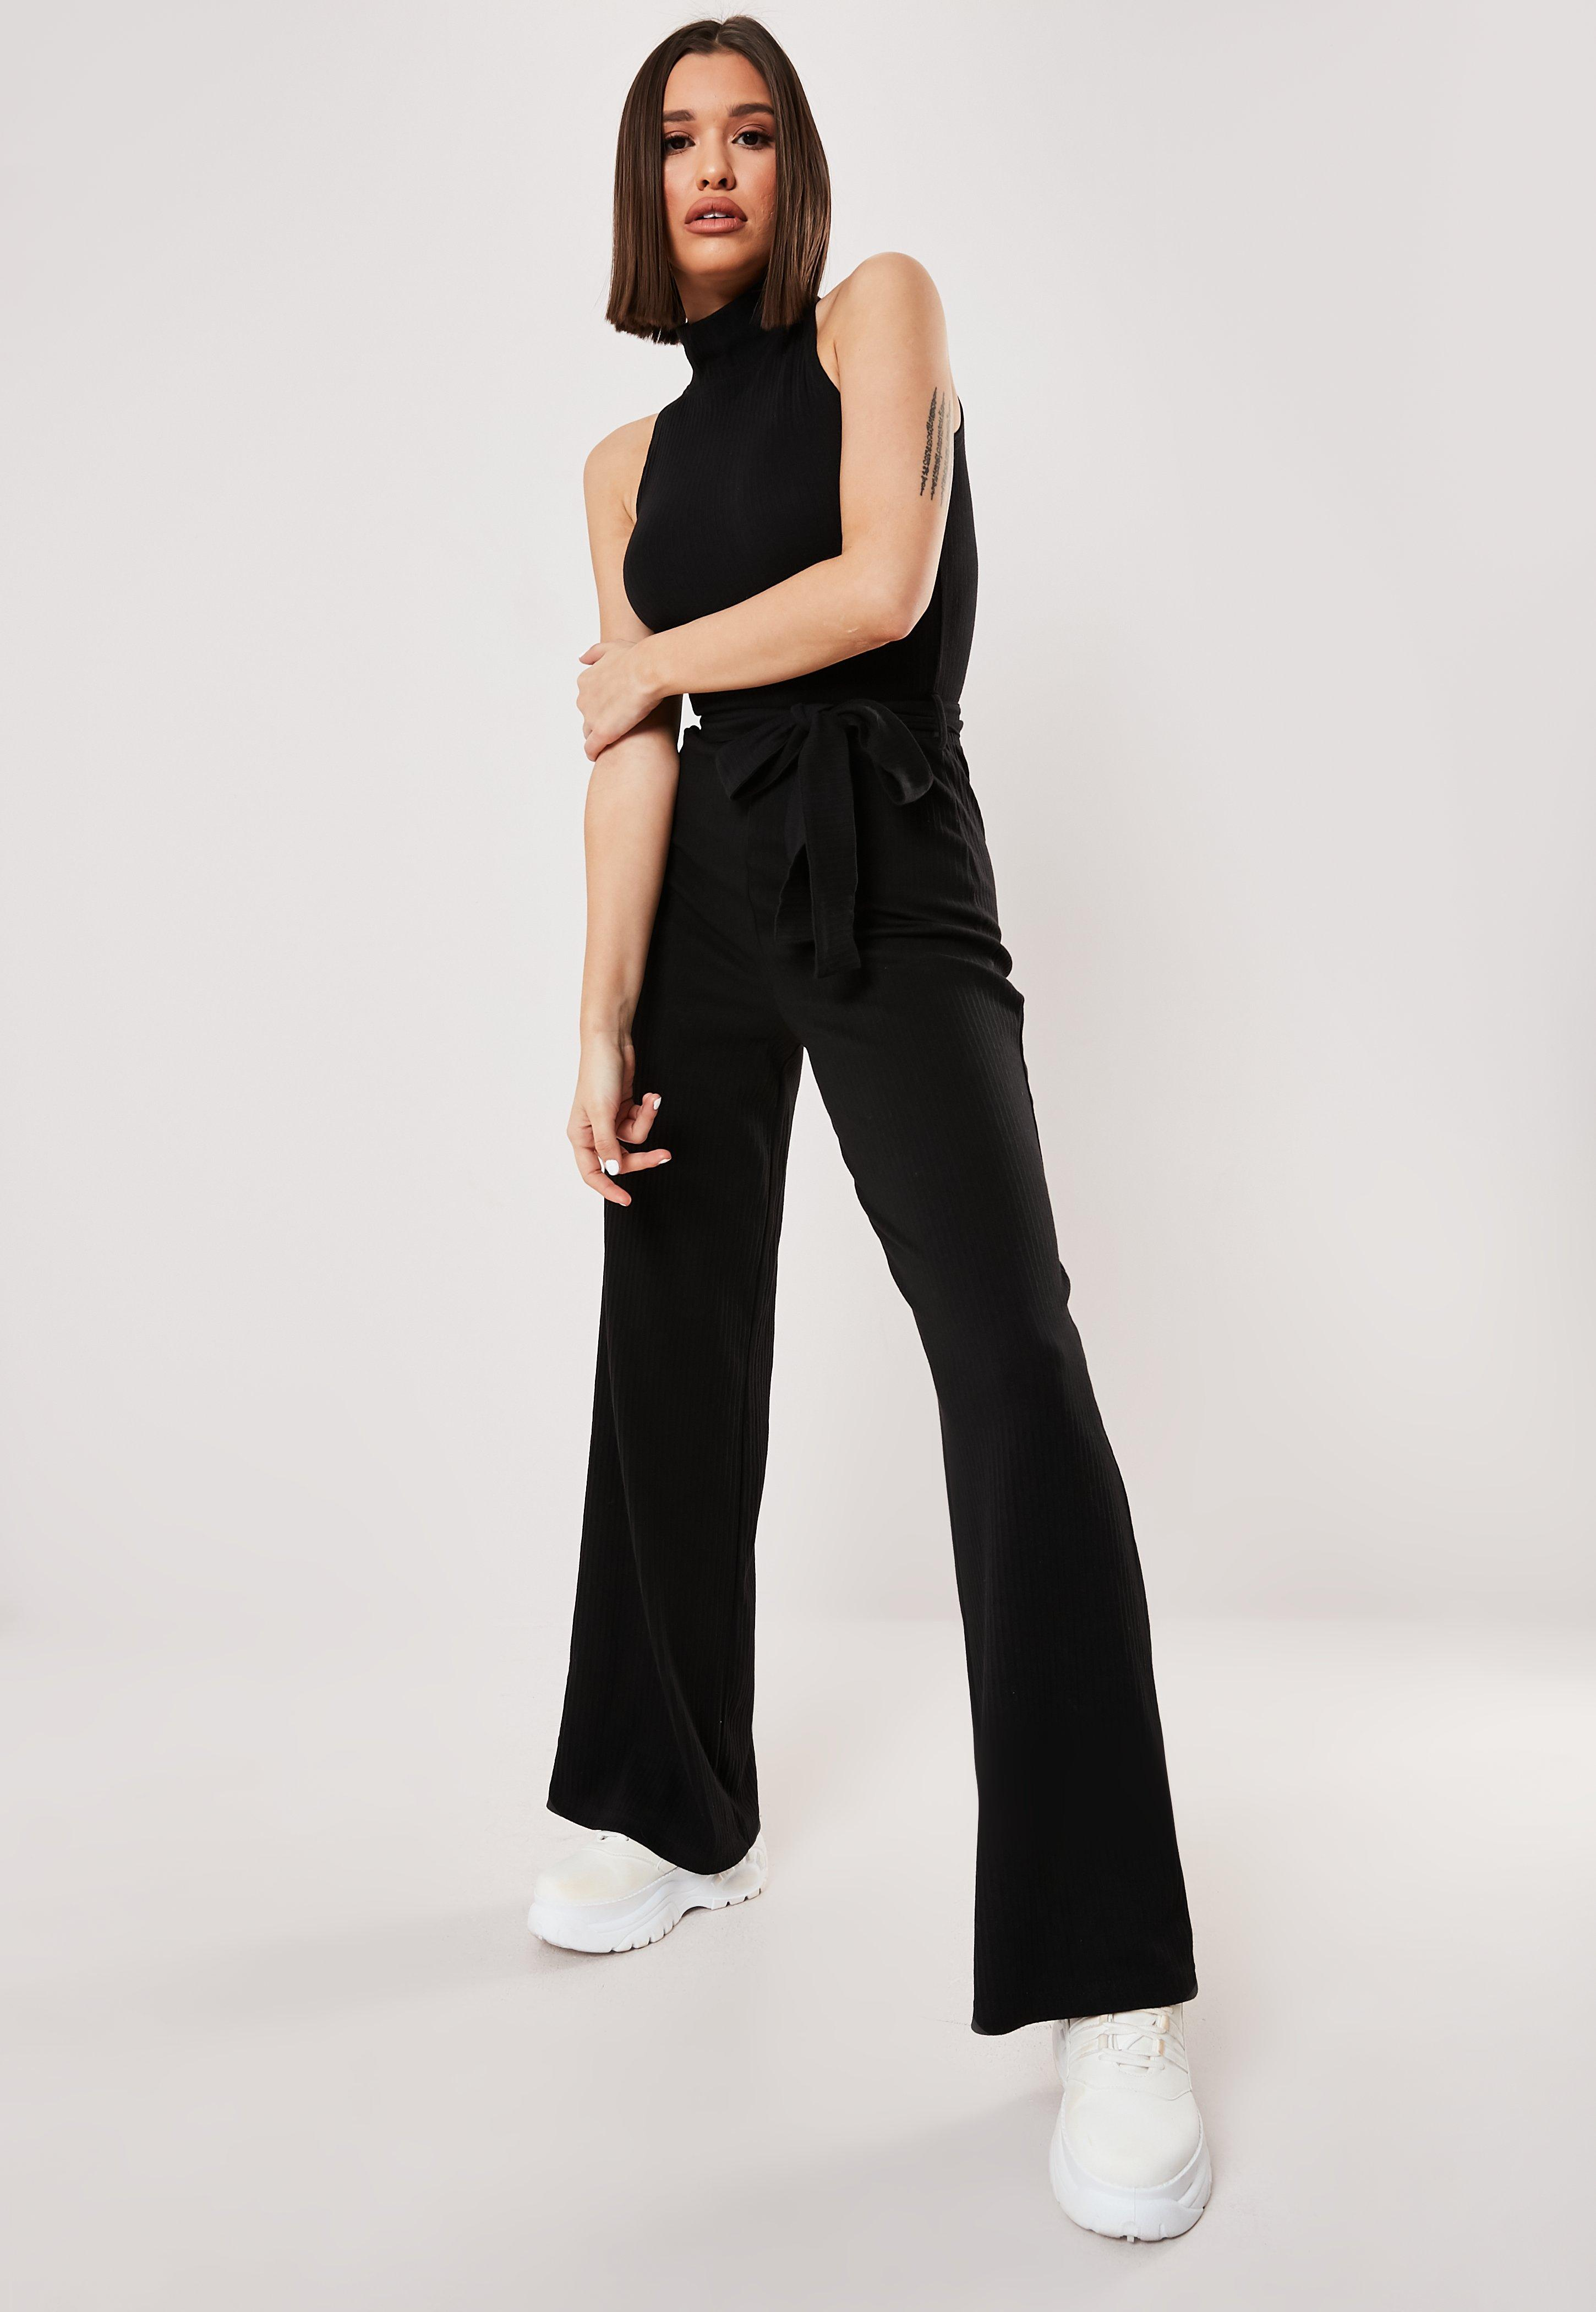 f2f622070a97 Black Jumpsuits | All Black Jumpsuits - Missguided